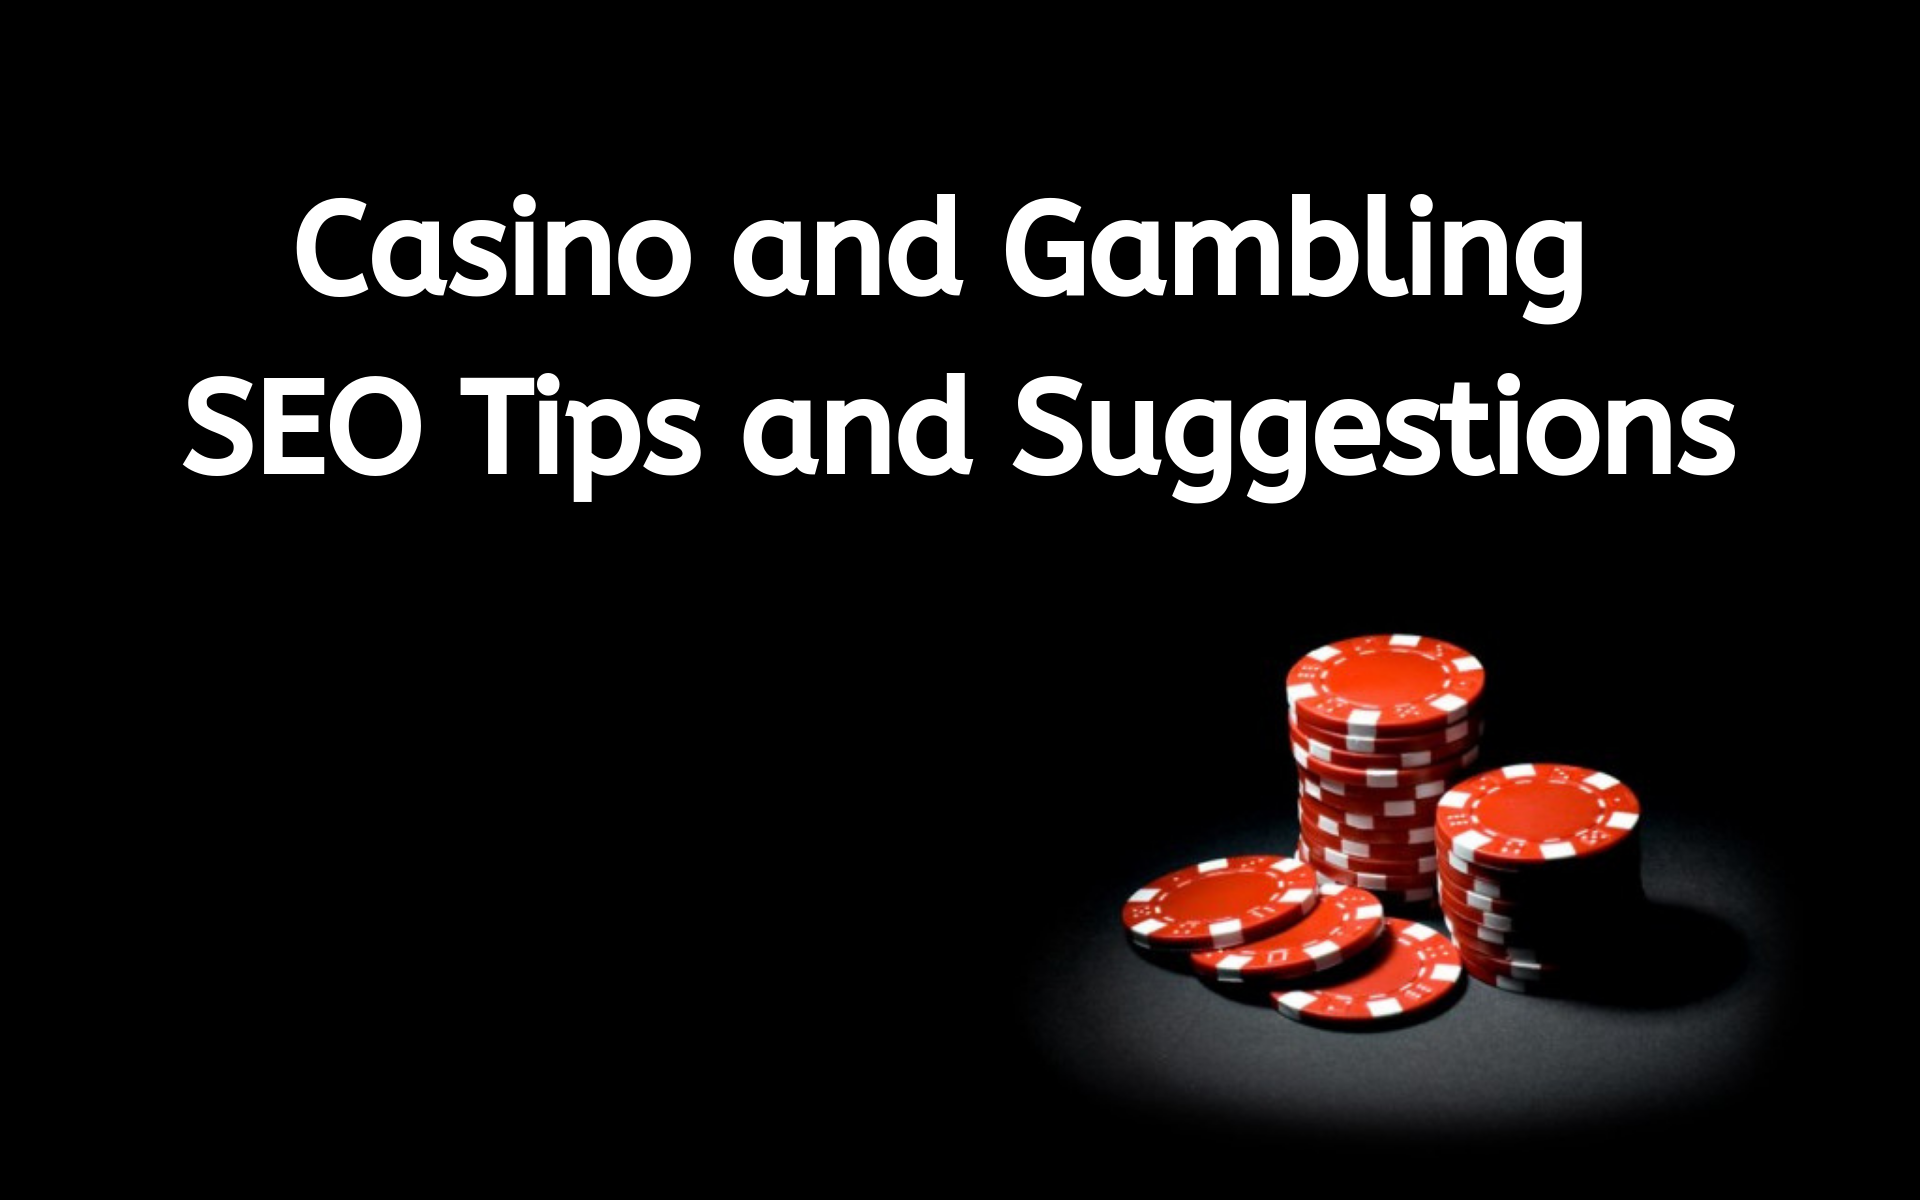 2020 Casino SEO tips to keep using in 2021